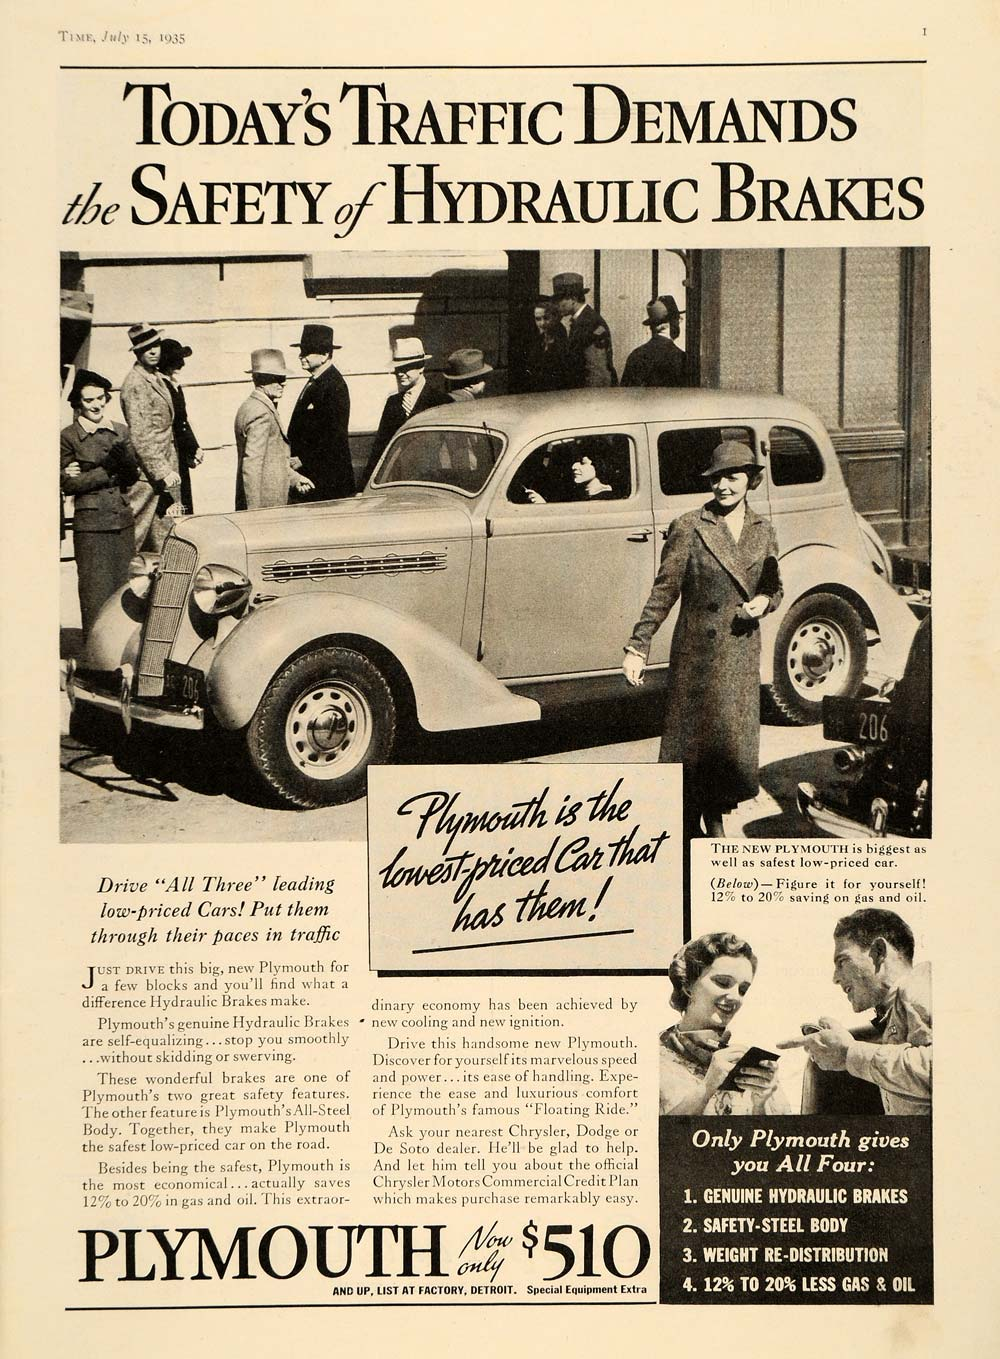 1935 Ad Vintage Plymouth Cars Hydraulic Brakes Chrysler - ORIGINAL TM7